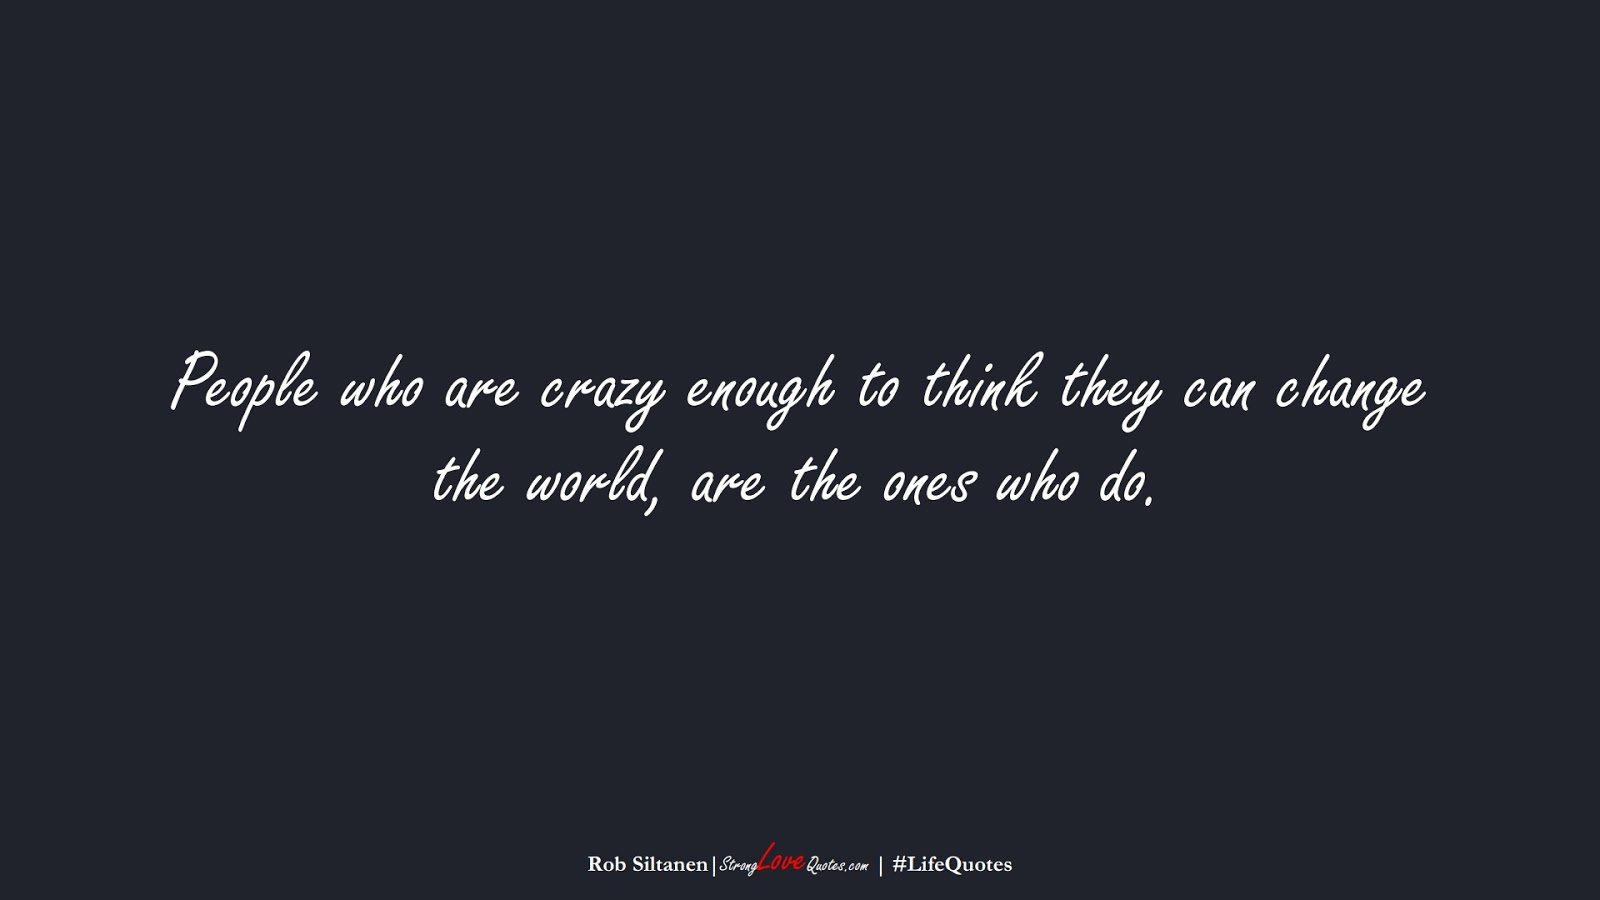 People who are crazy enough to think they can change the world, are the ones who do. (Rob Siltanen);  #LifeQuotes